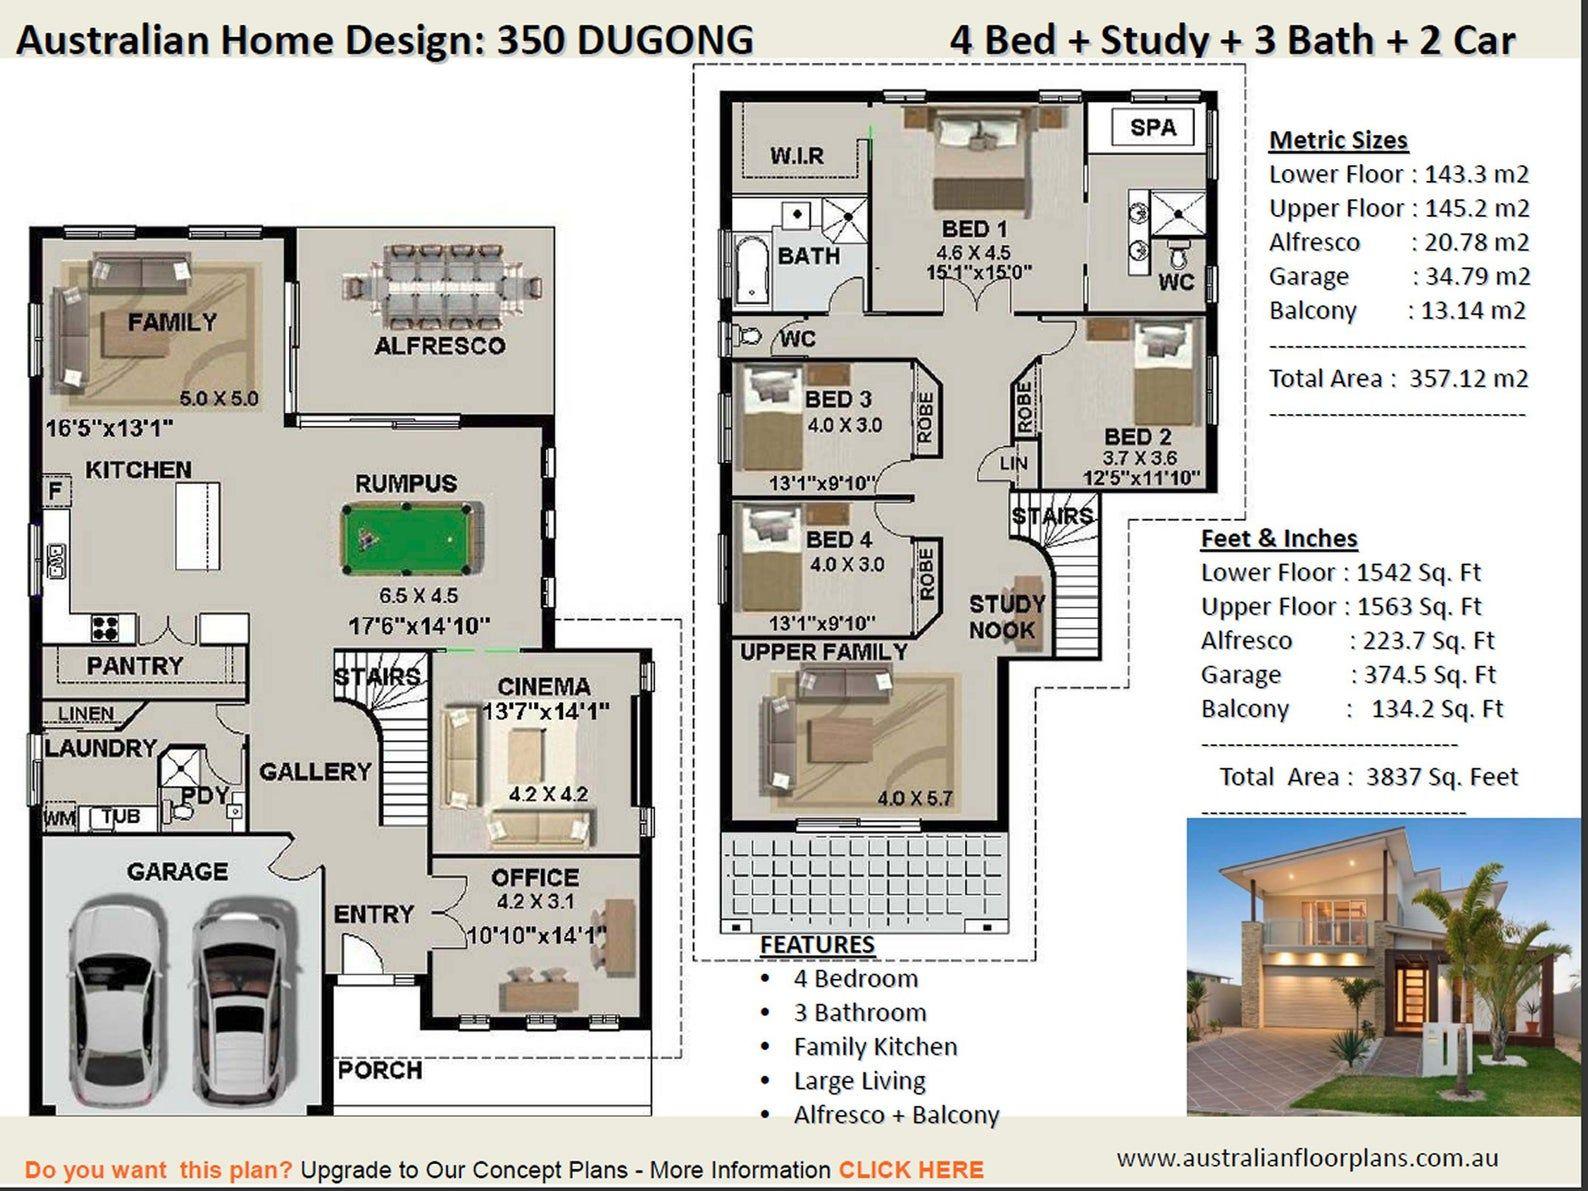 Two Storey House Plans Distinctive Homes Double Storey House Etsy Two Storey House Plans House Plans For Sale Double Storey House Plans